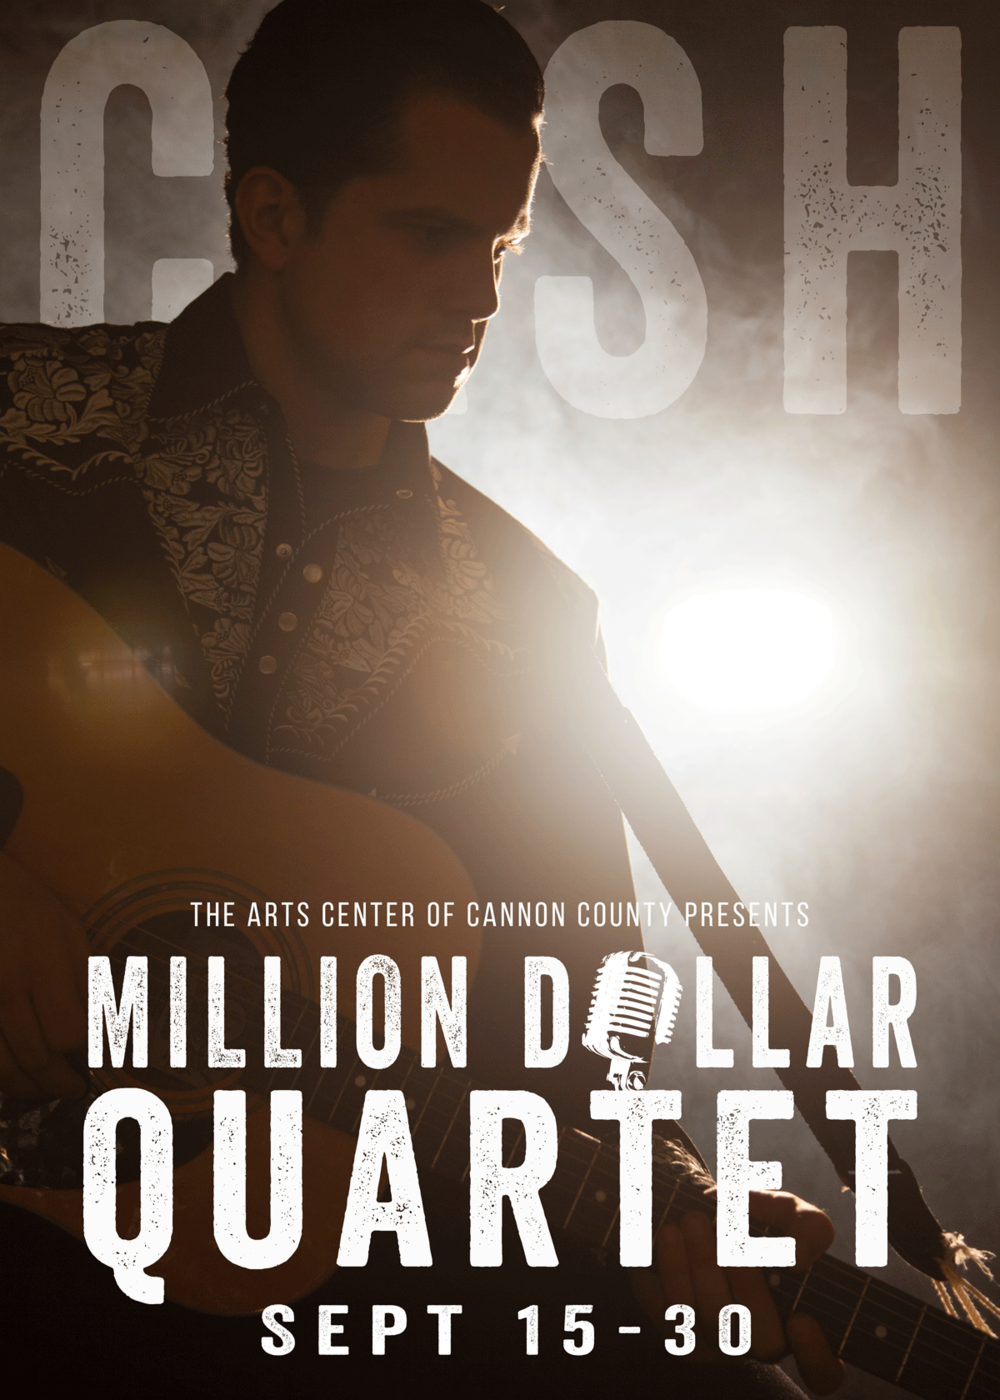 IMG_5146-Cash-poster.png